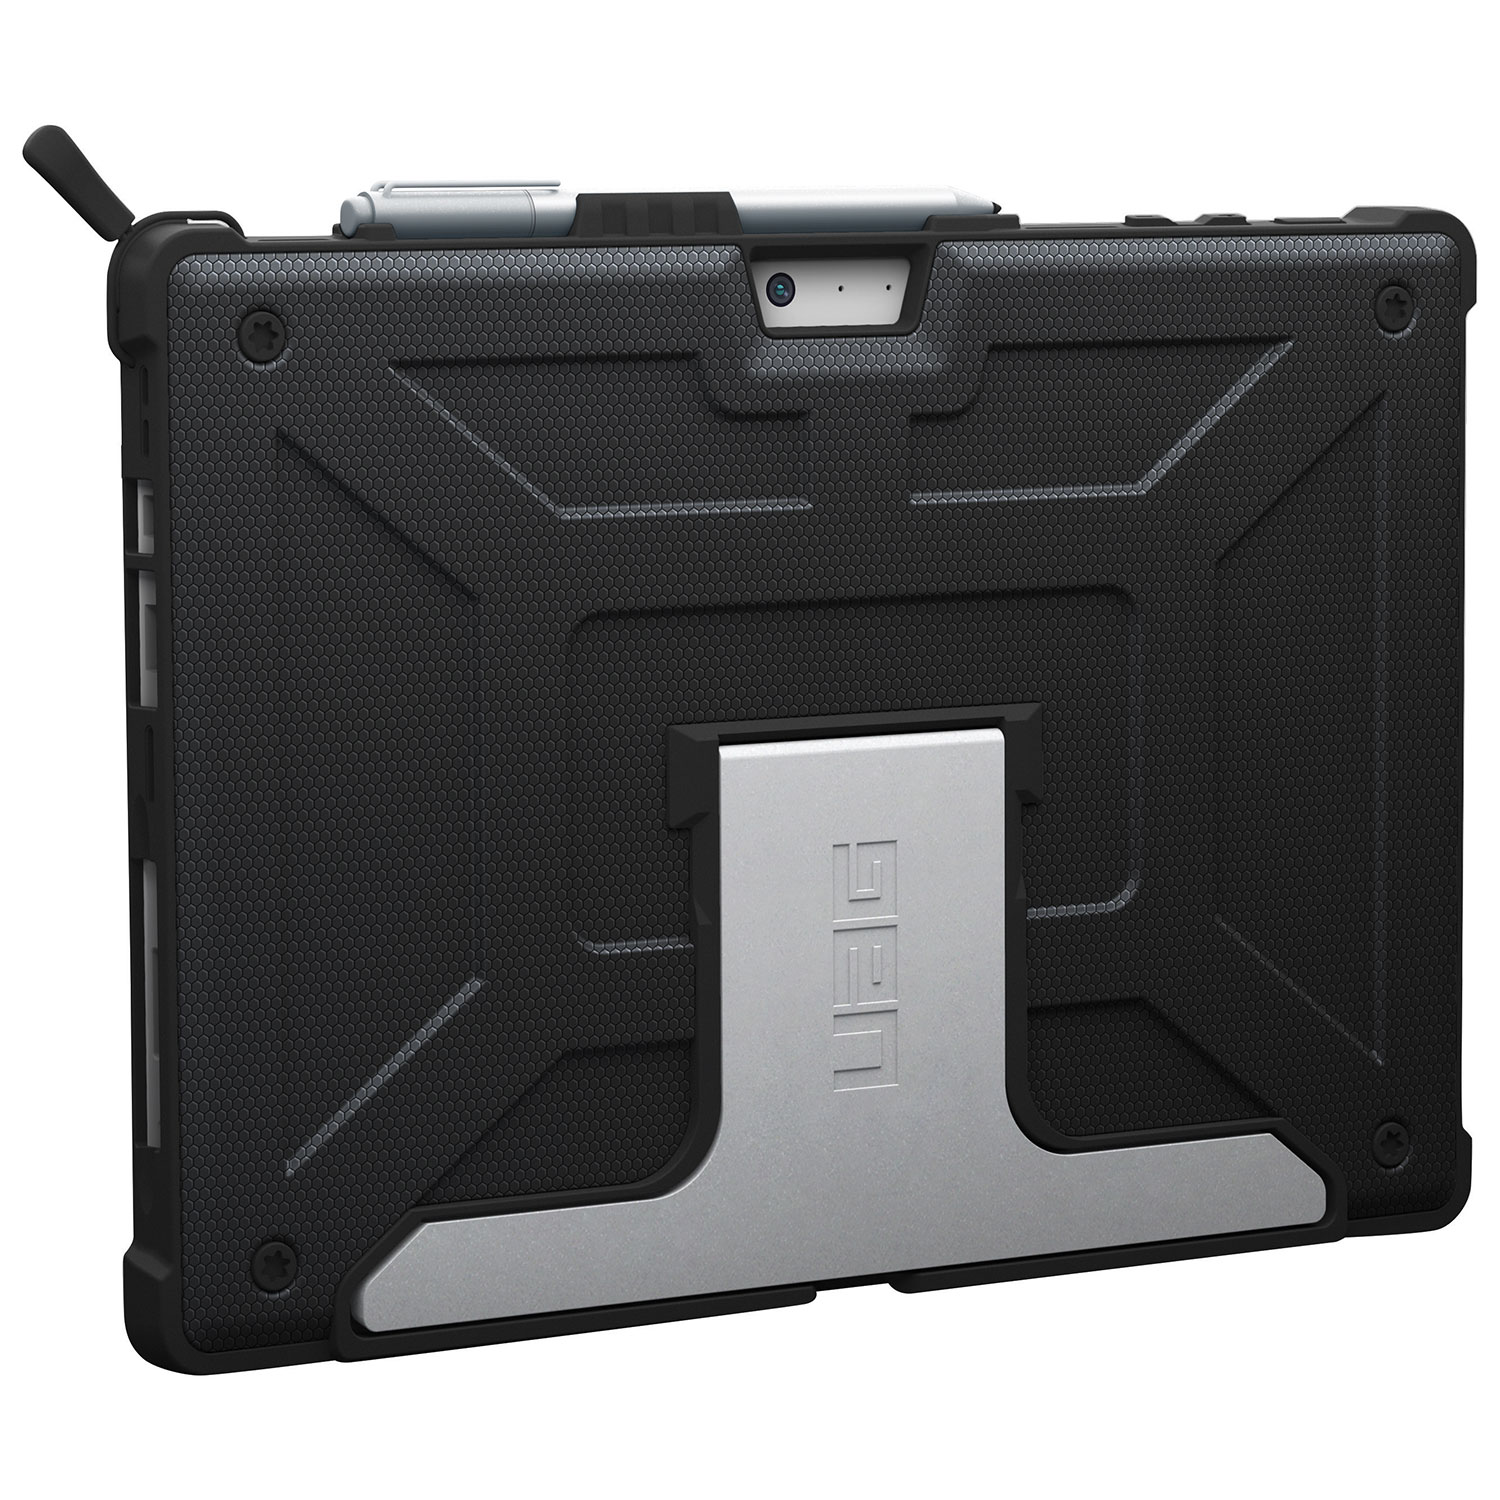 rug mobiledemand pro for from microsoft best lte new rugged case tablets category surface